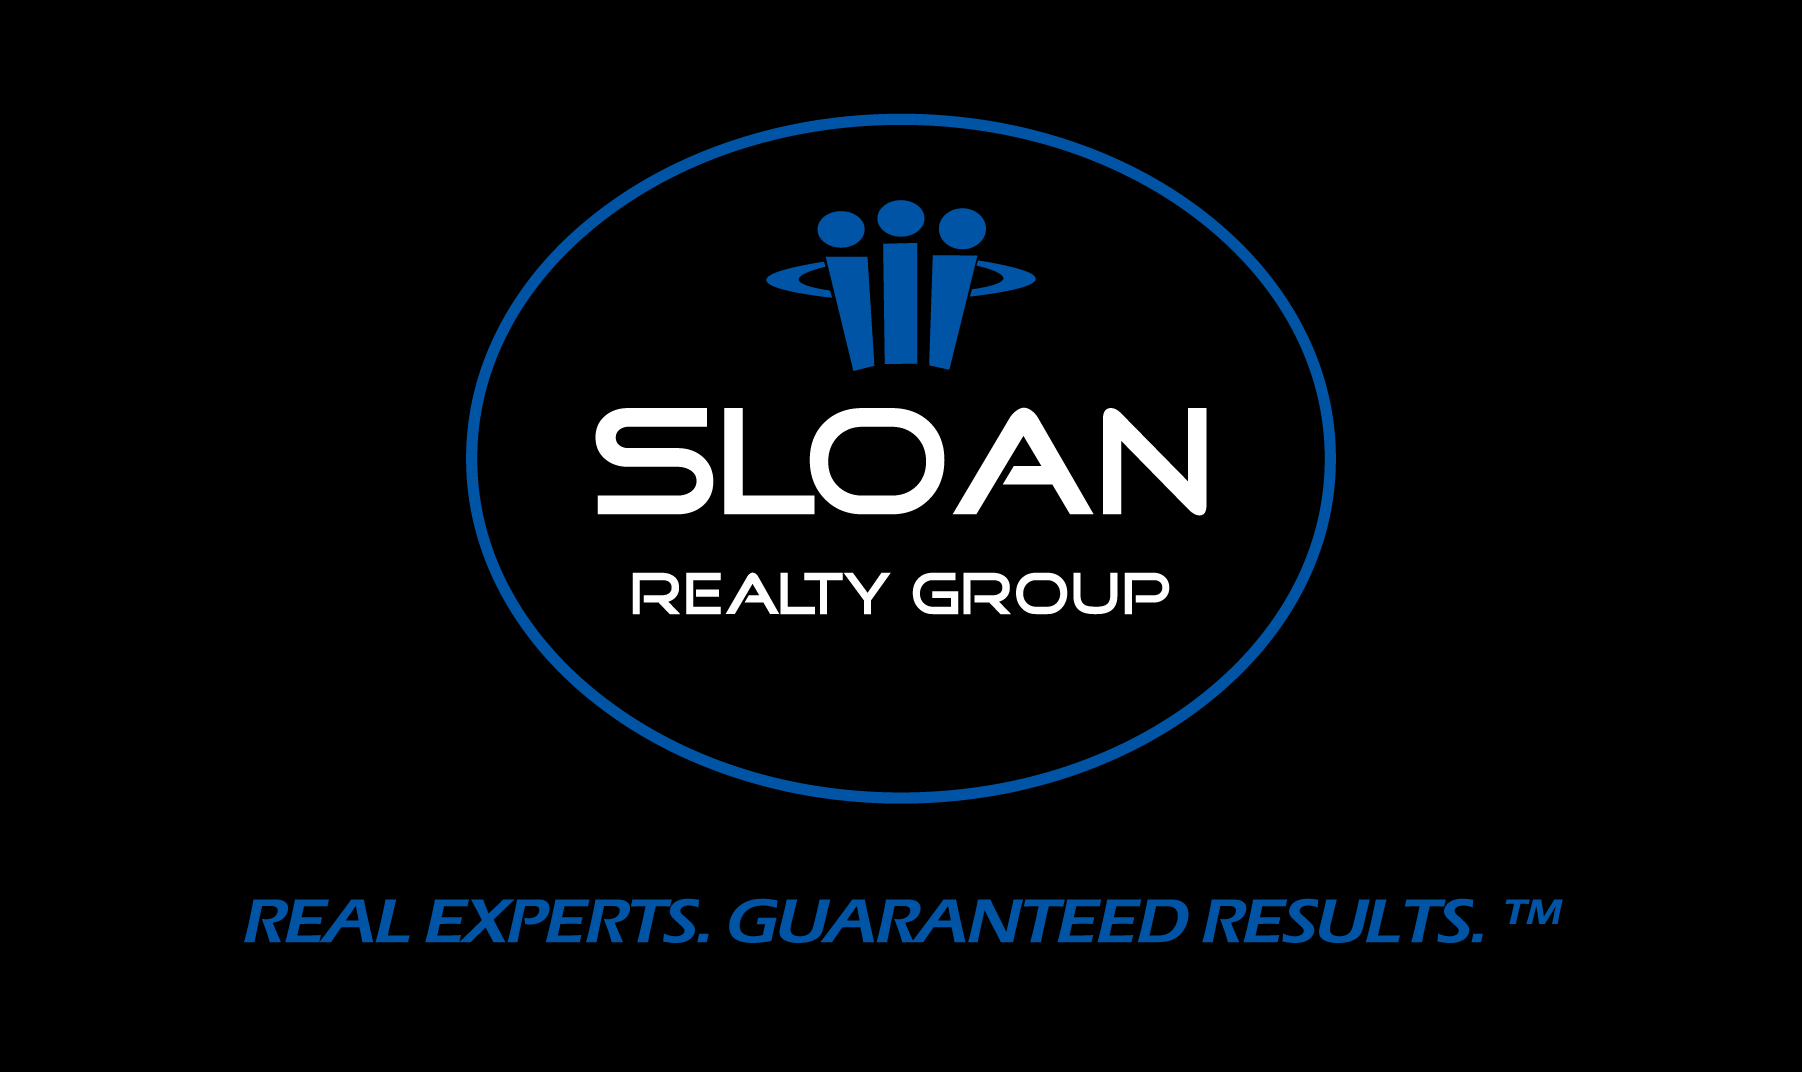 Sloan Realty Group logo